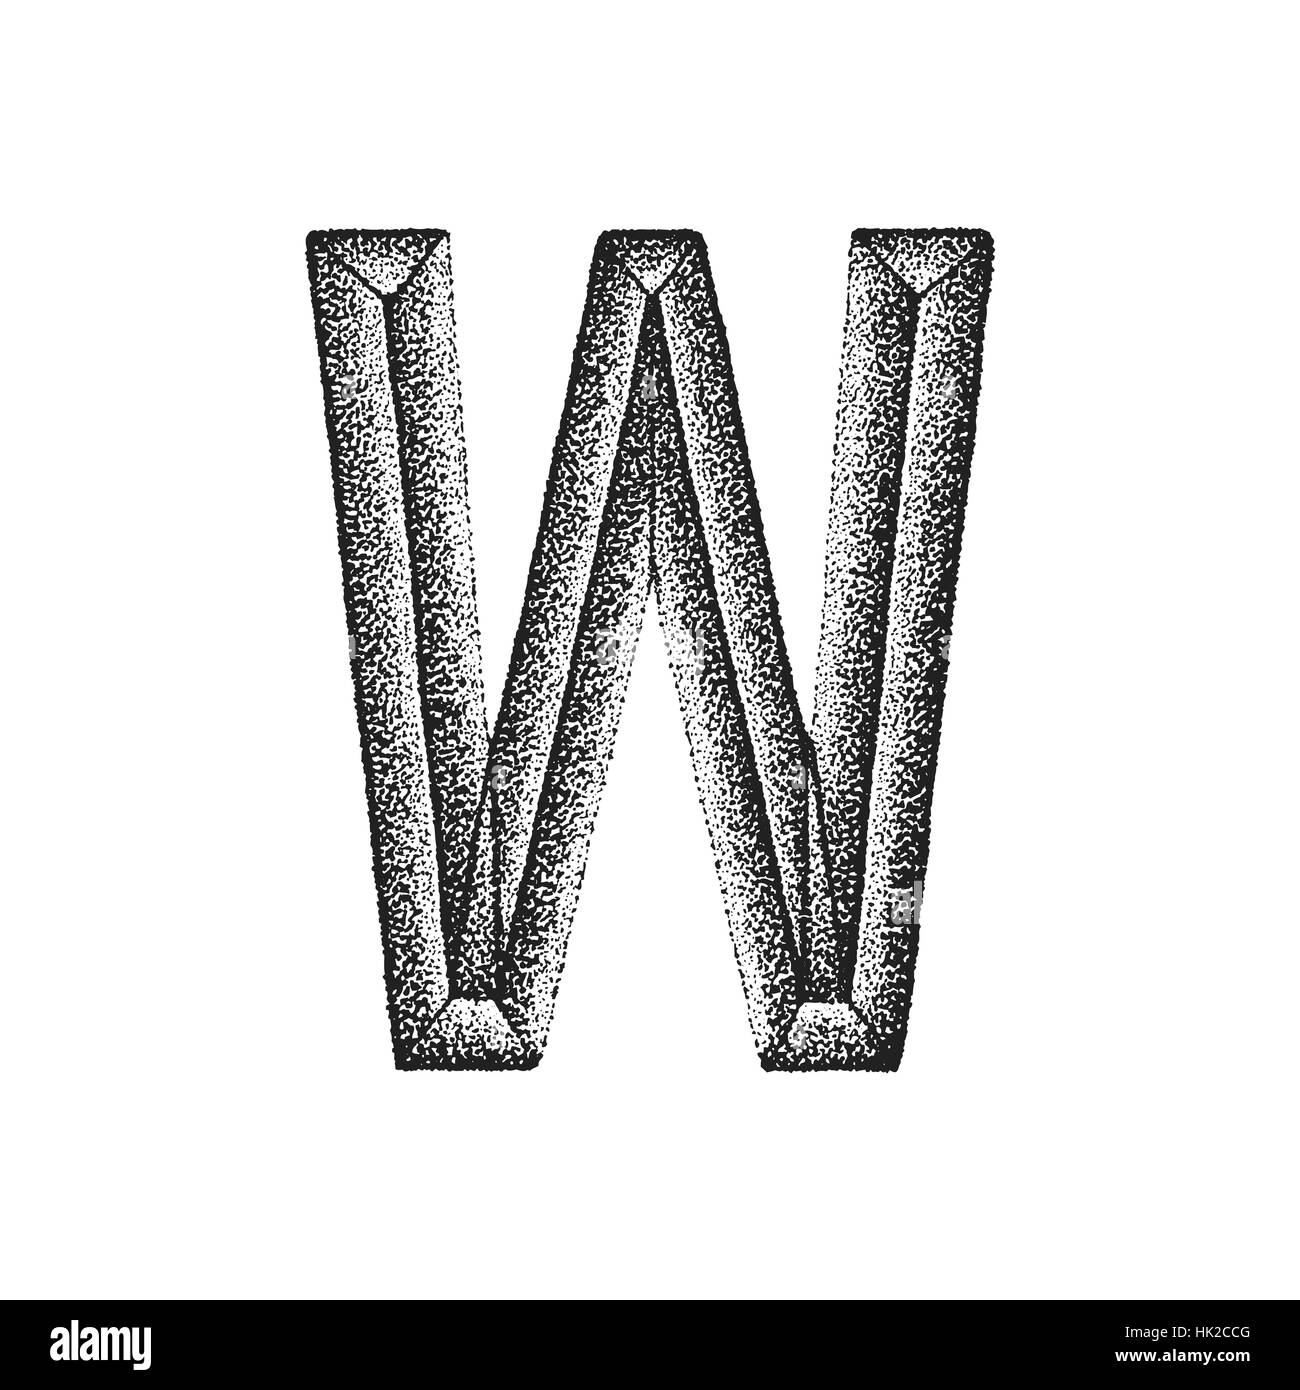 Vector Black Monochrome Vintage Ink Hand Drawn Dot Work Retro Tattoo Style Engraving Volumetric Letter W Isolated White Background